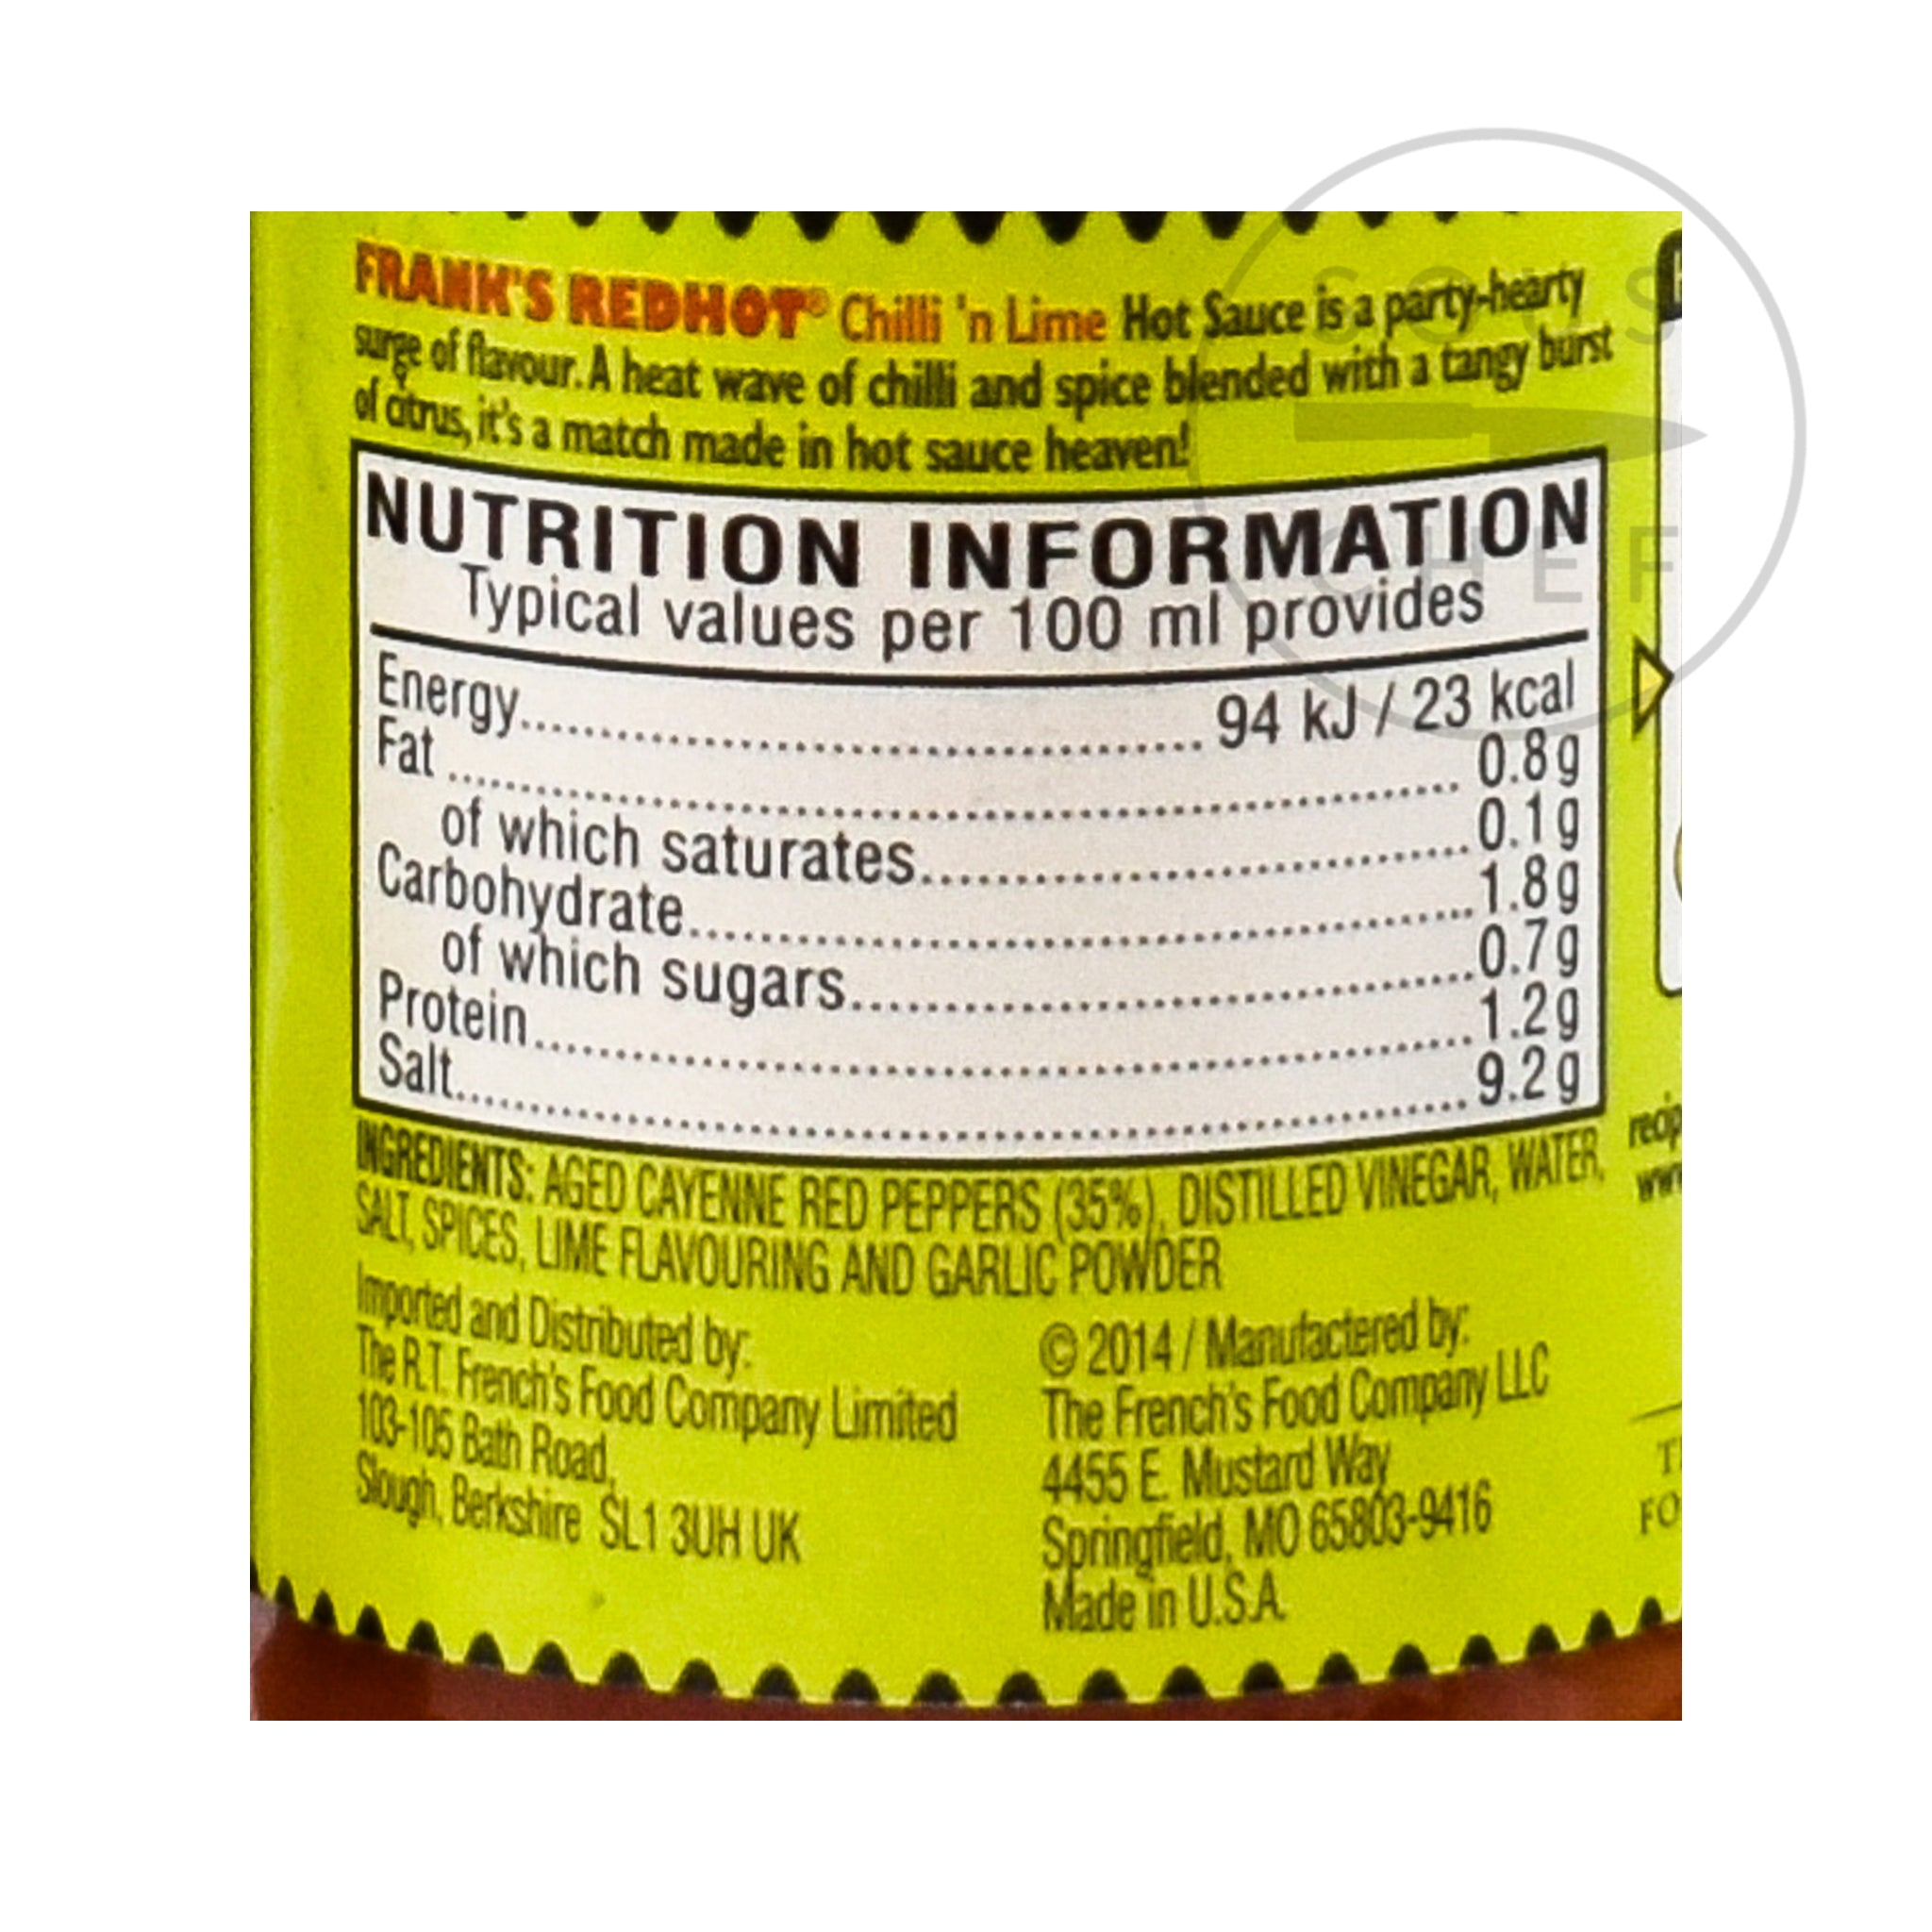 Frank's Red Hot Chilli & Lime Sauce 148ml nutritional information ingredients